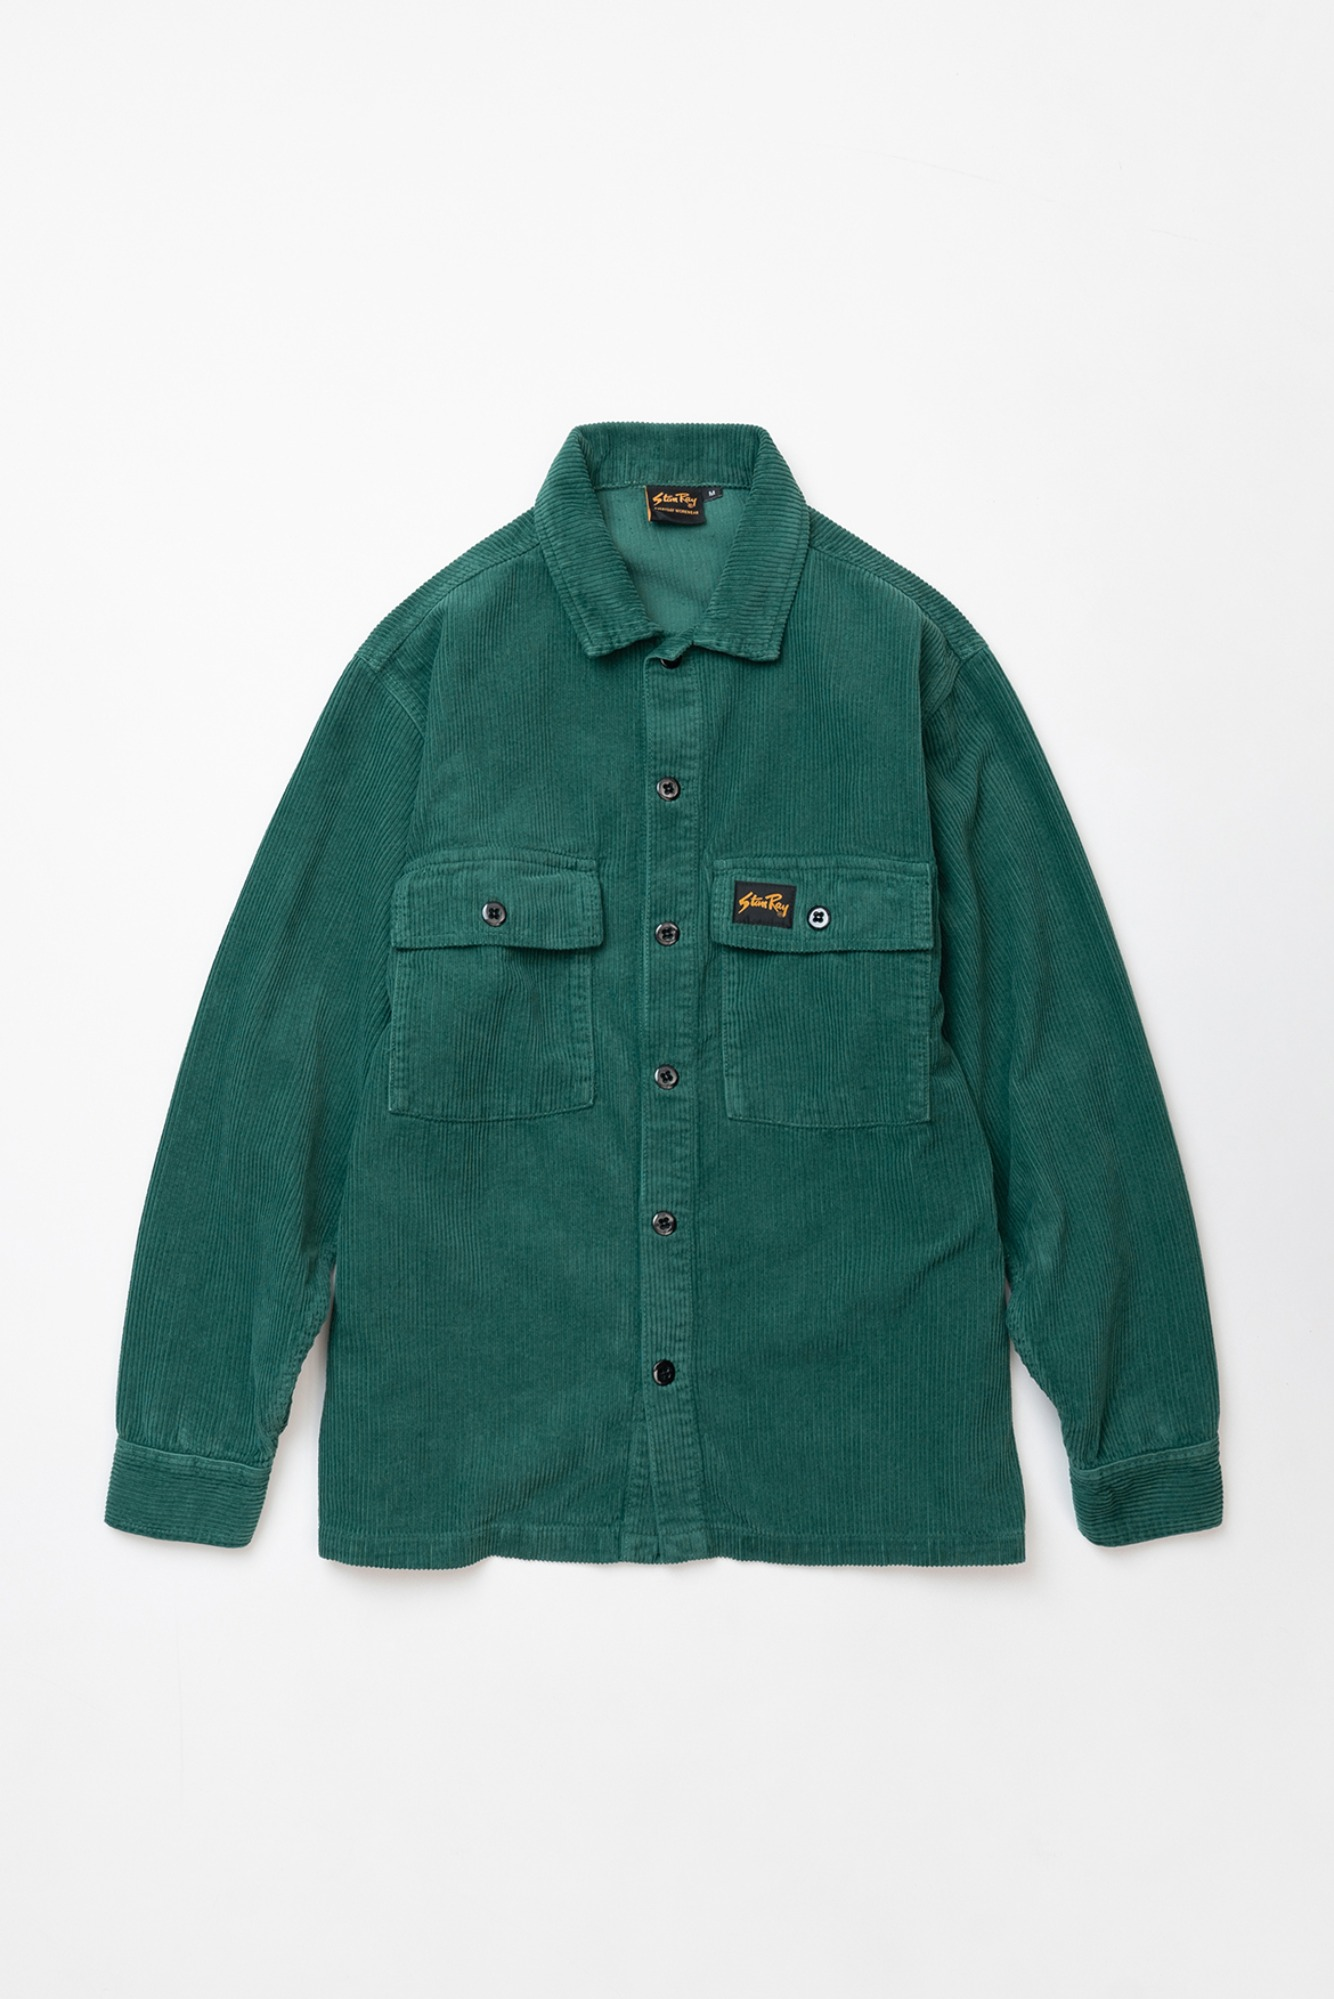 "STAN RAY Cord CPO Shirt ""Indian Green Cord"""